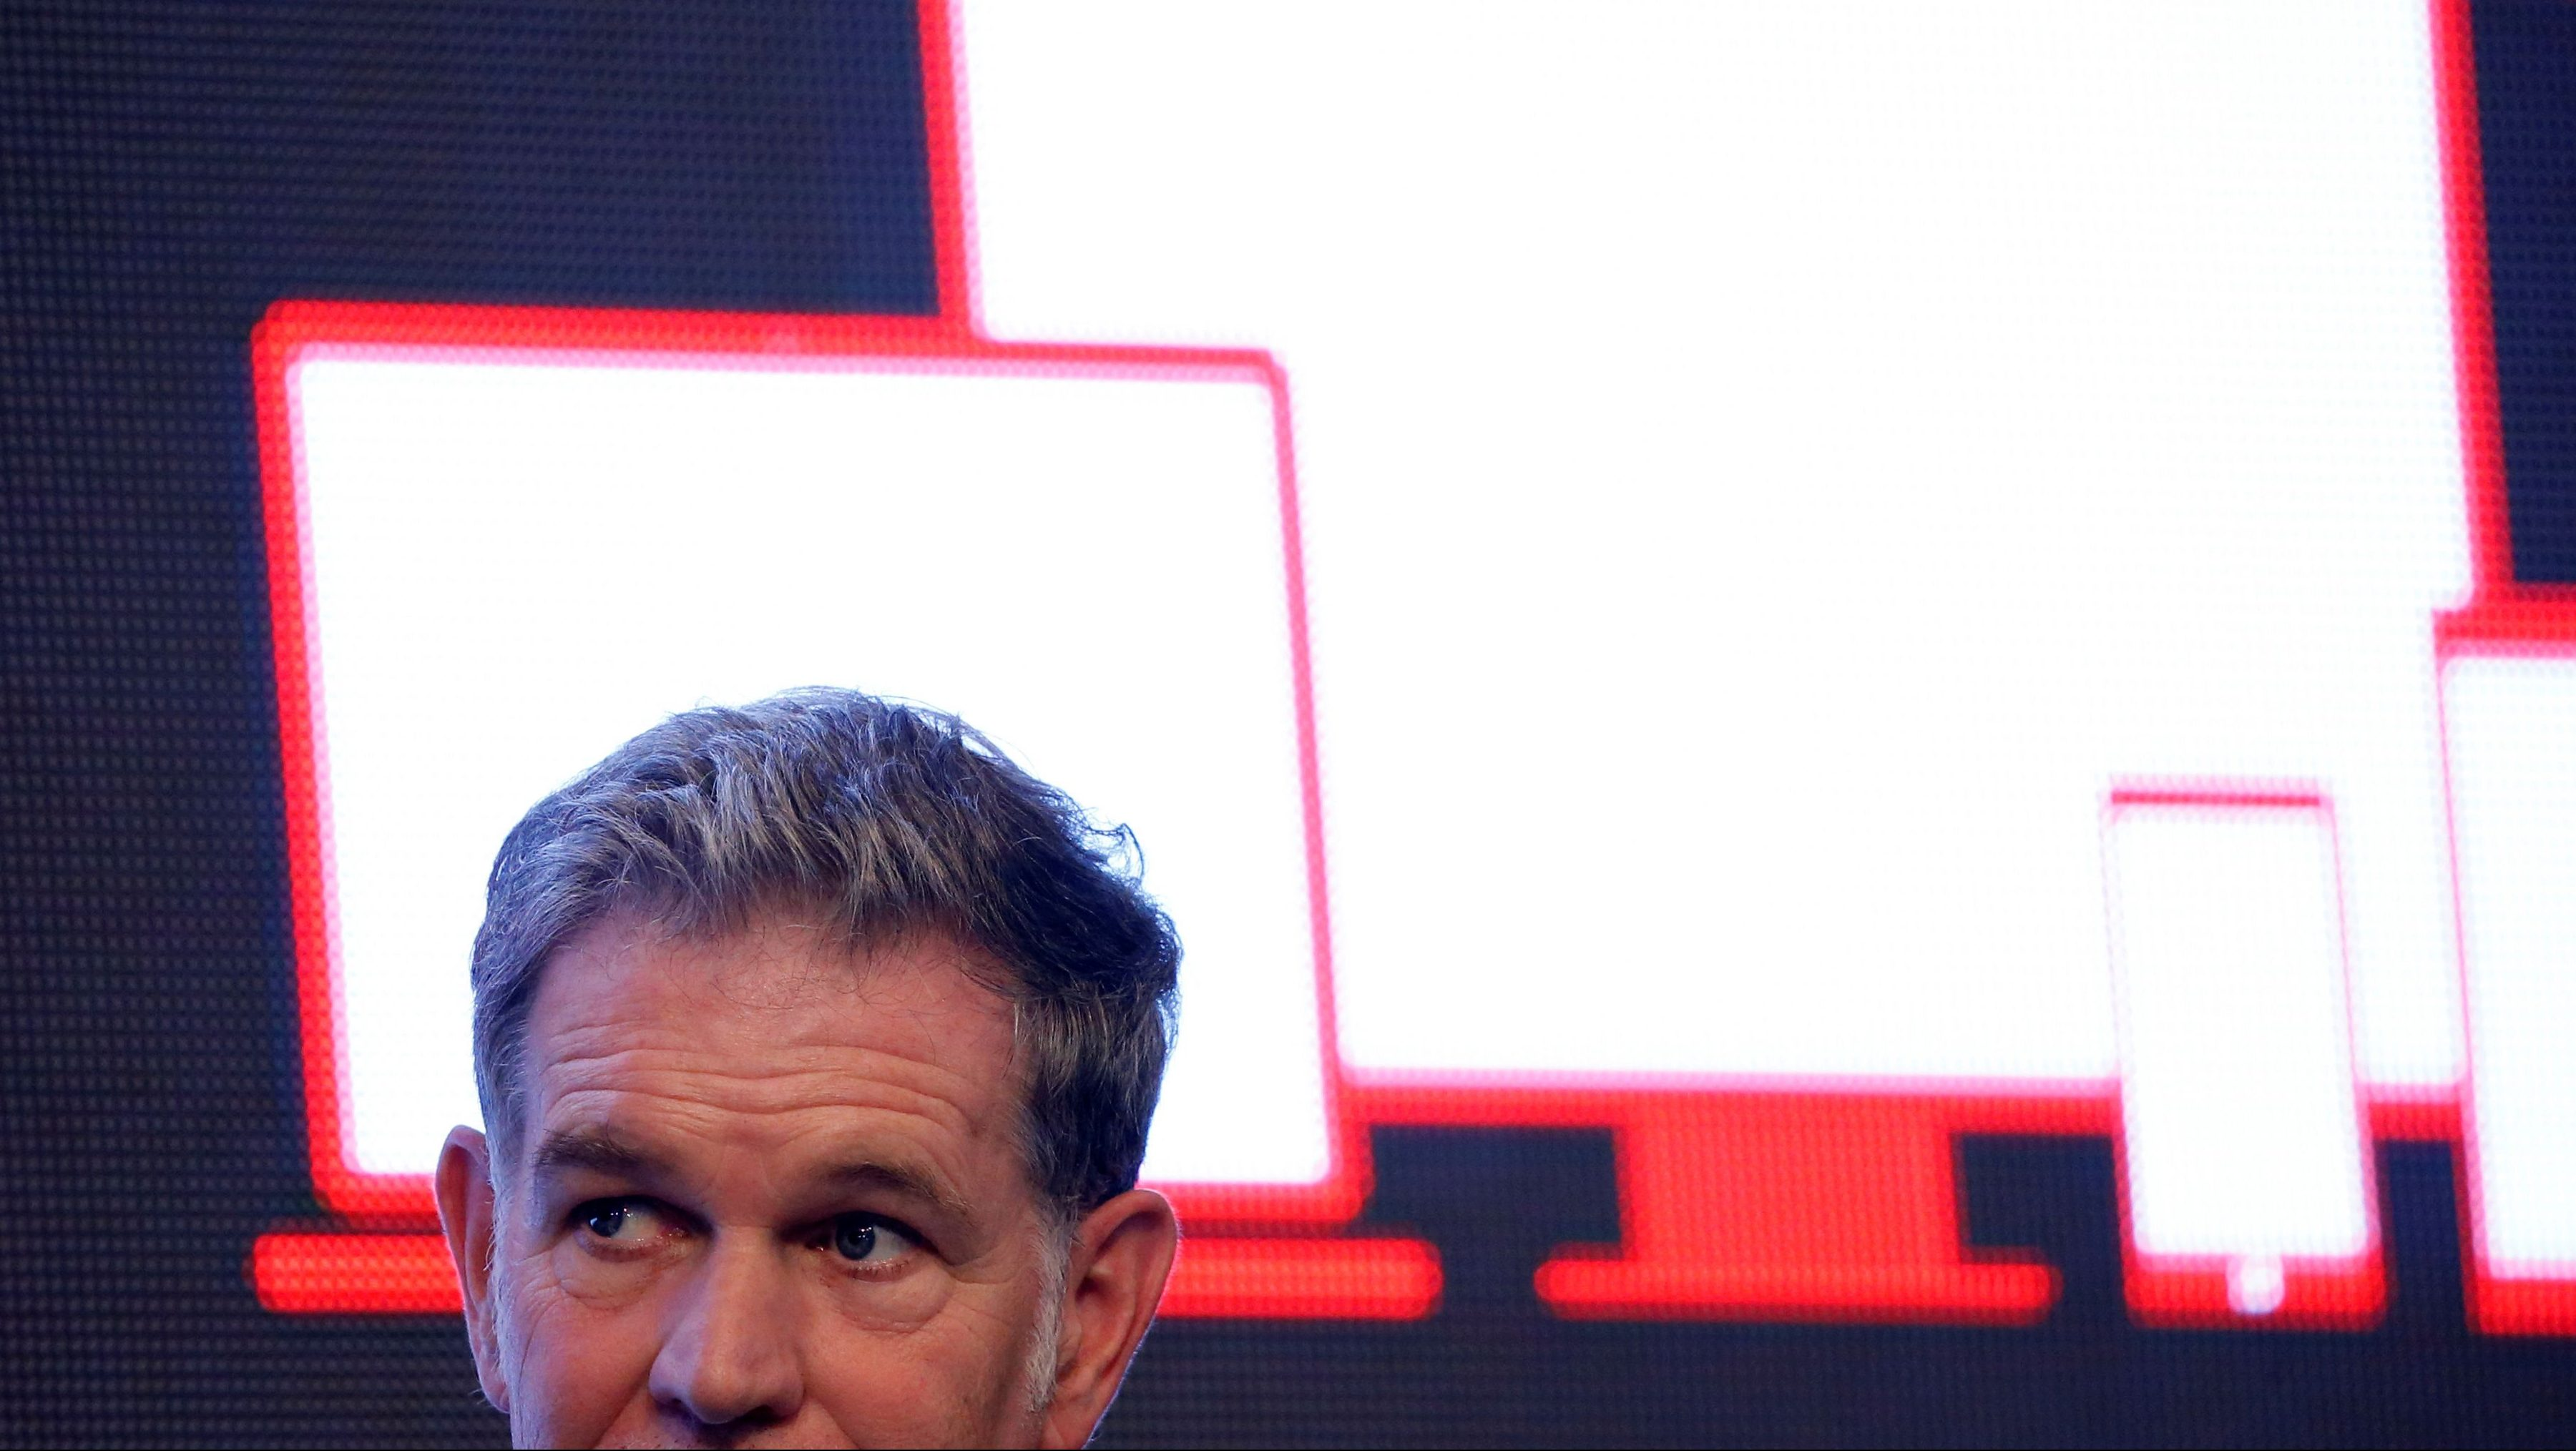 Reed Hastings, co-founder and CEO of Netflix, attends a news conference in Seoul,